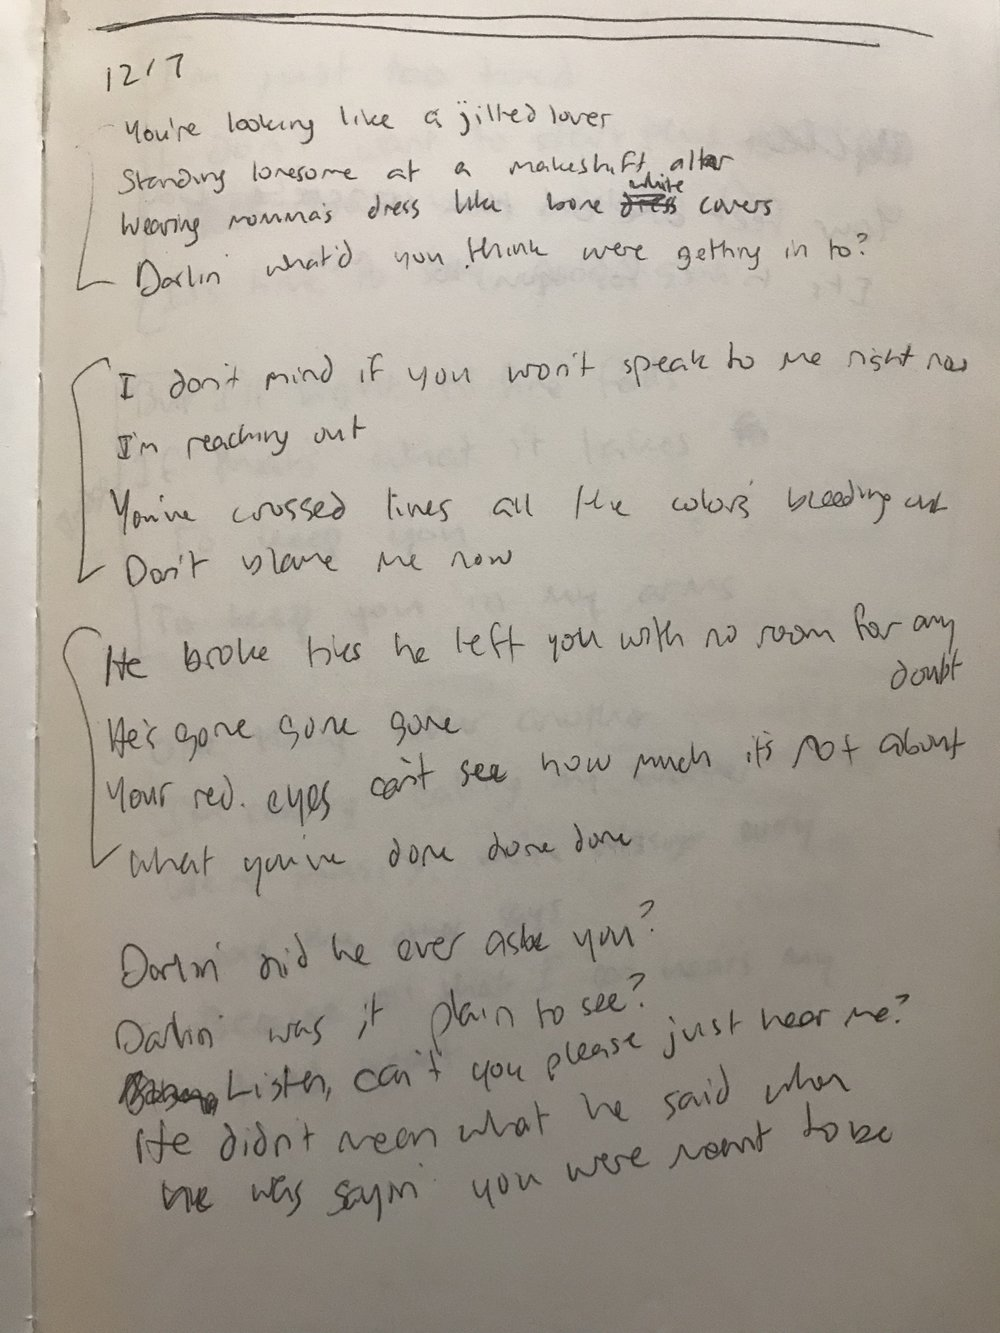 this is the first version of jilted lover that we could find. jonny has terrible handwriting.